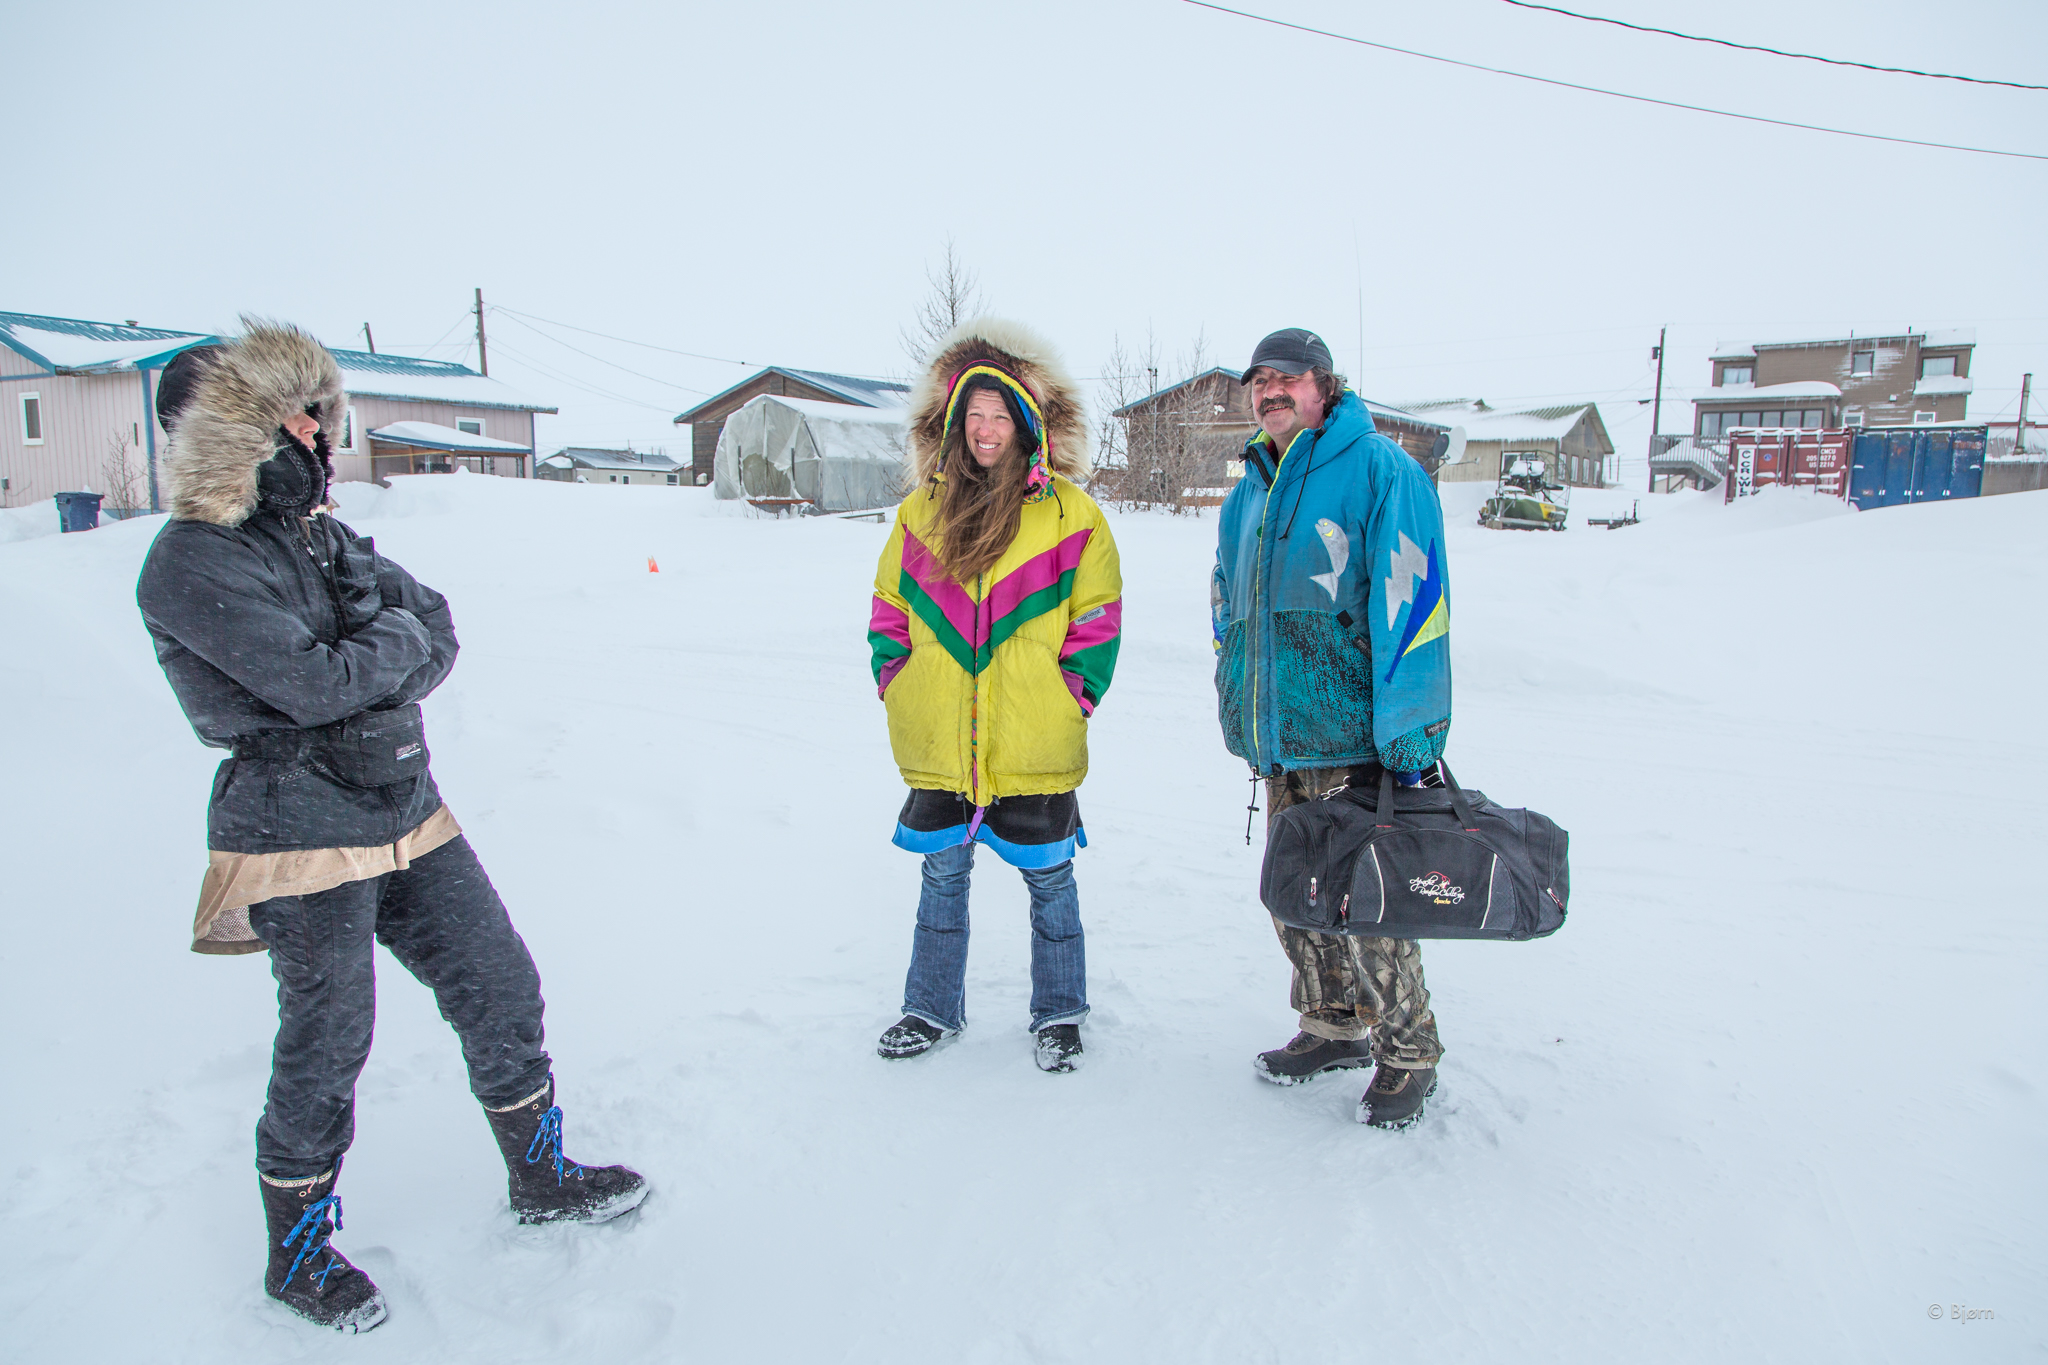 The final adventure came when we all boarded our Alaska Air flight, sat in the jet for three hours and then had to get back out. One of the engines had frozen. Thankfully, Tim and Monica invited us to stay with them at their host family's house.